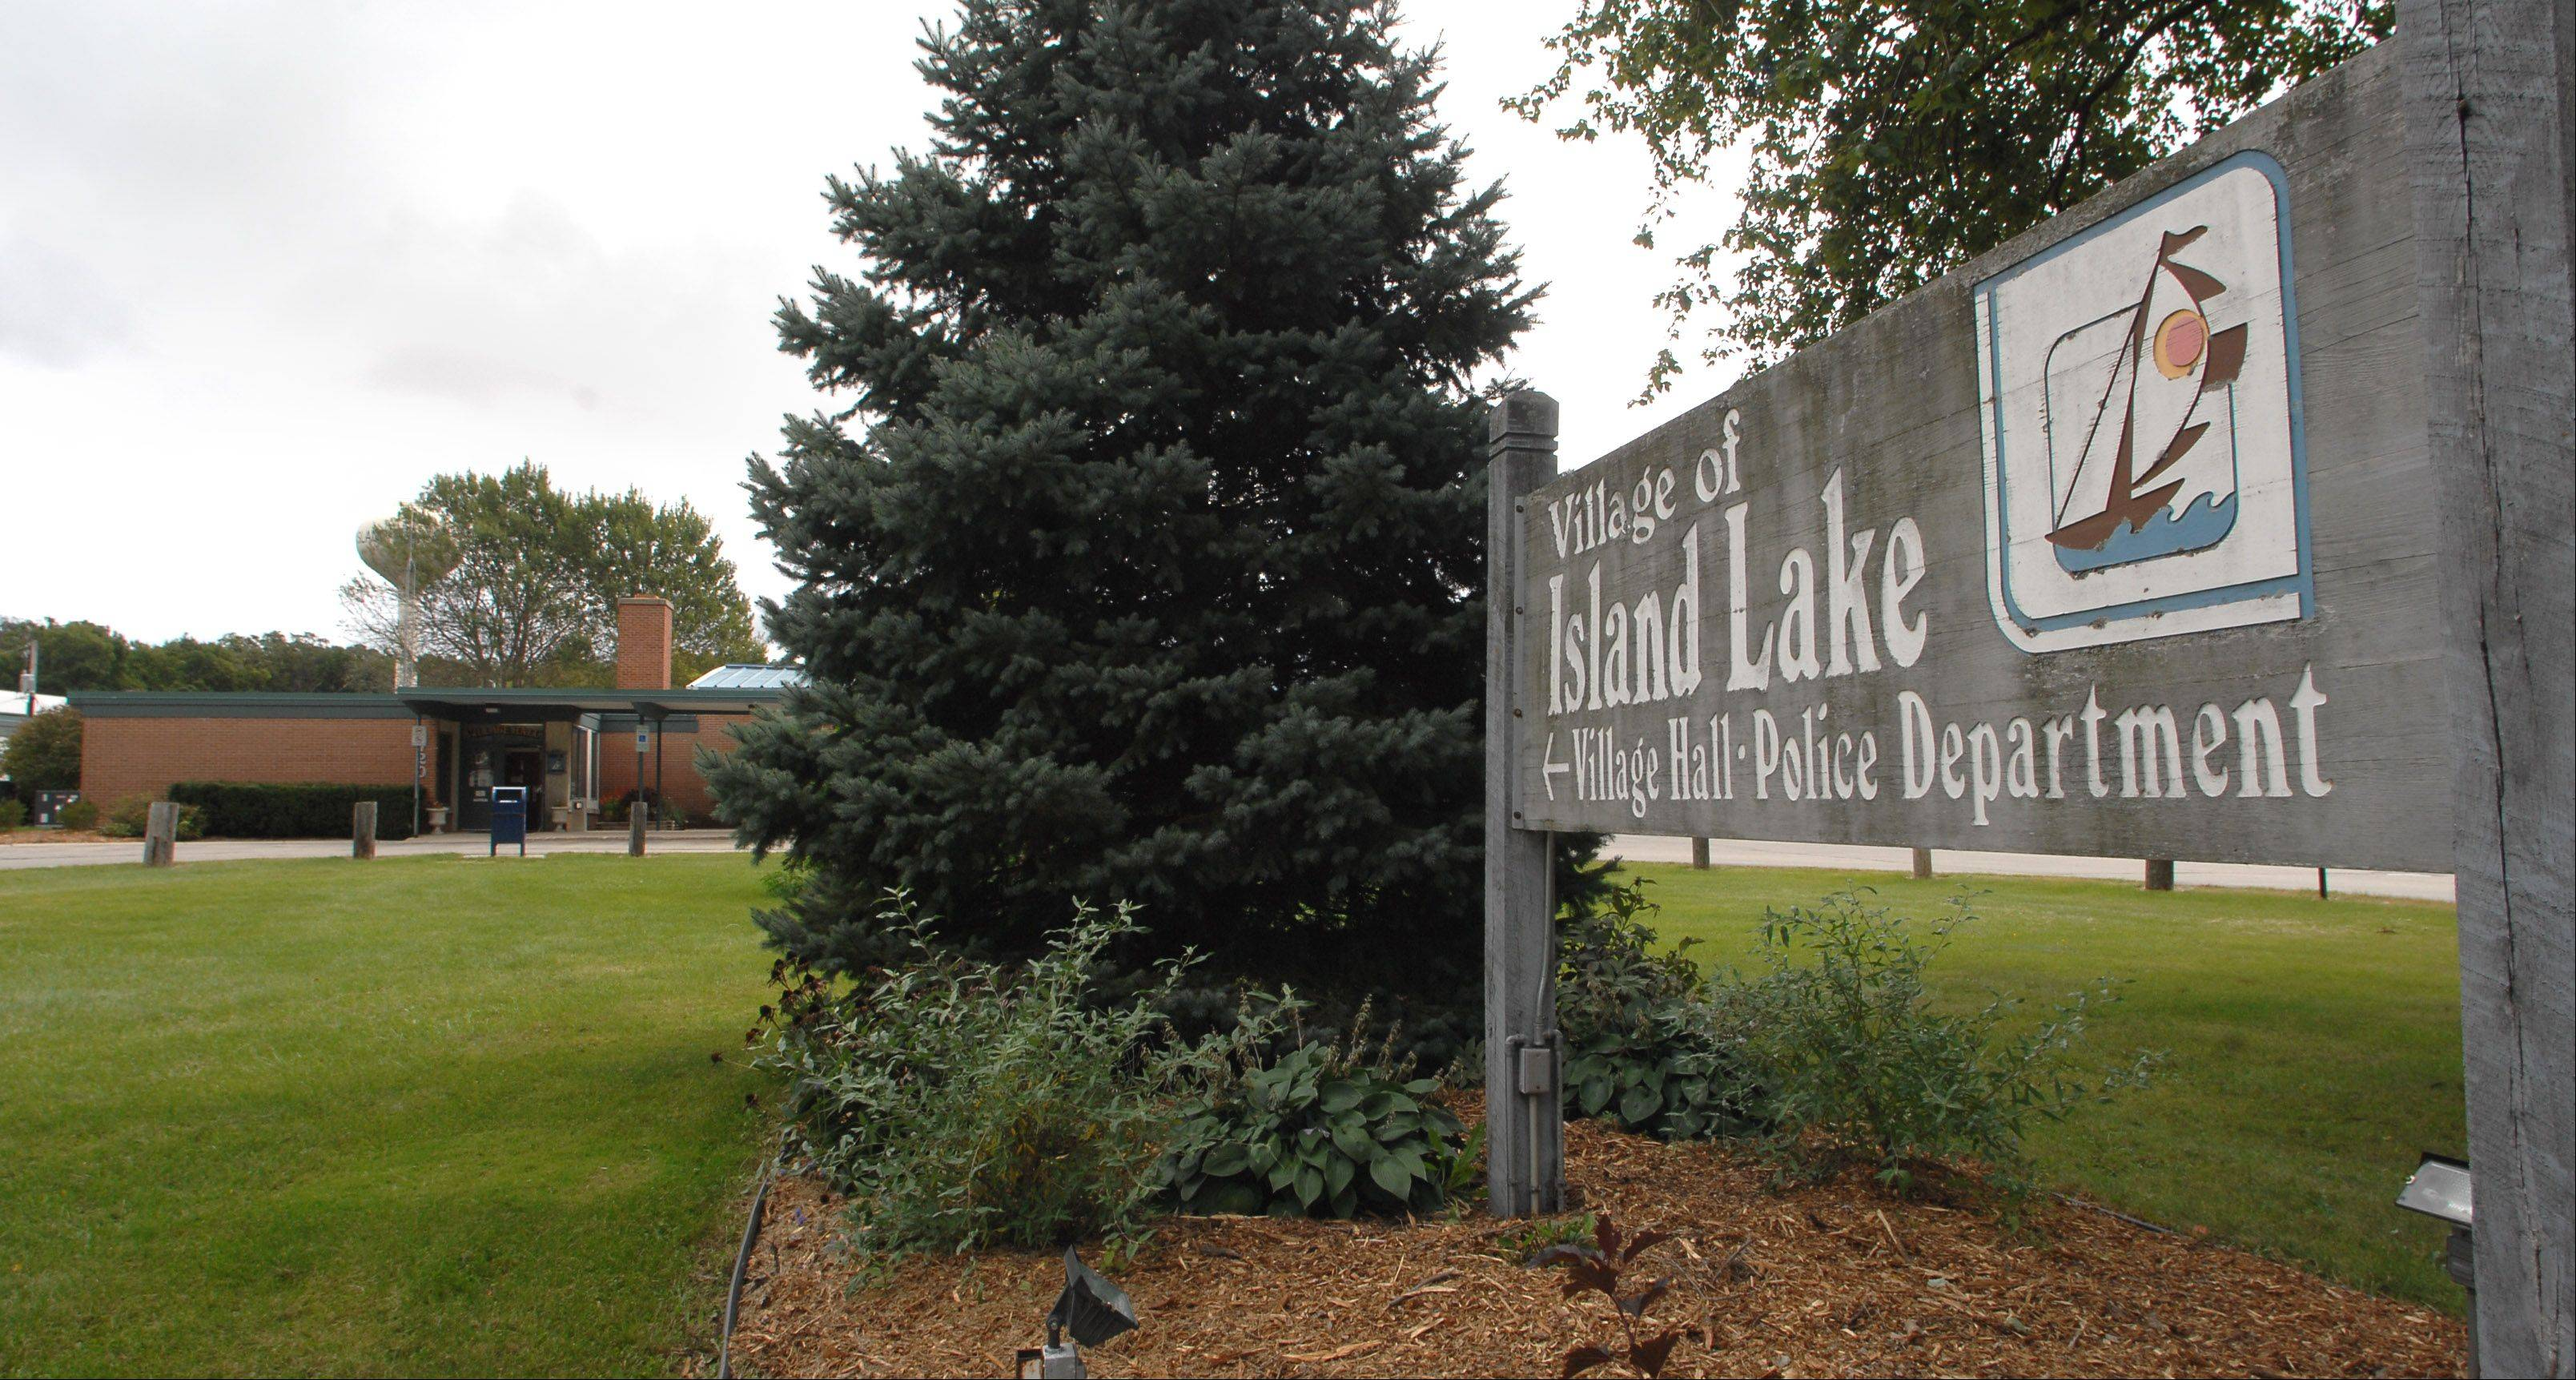 Island Lake officials have proposed building a new village hall. A local resident has filed an objection to a grass-roots petition about the project.